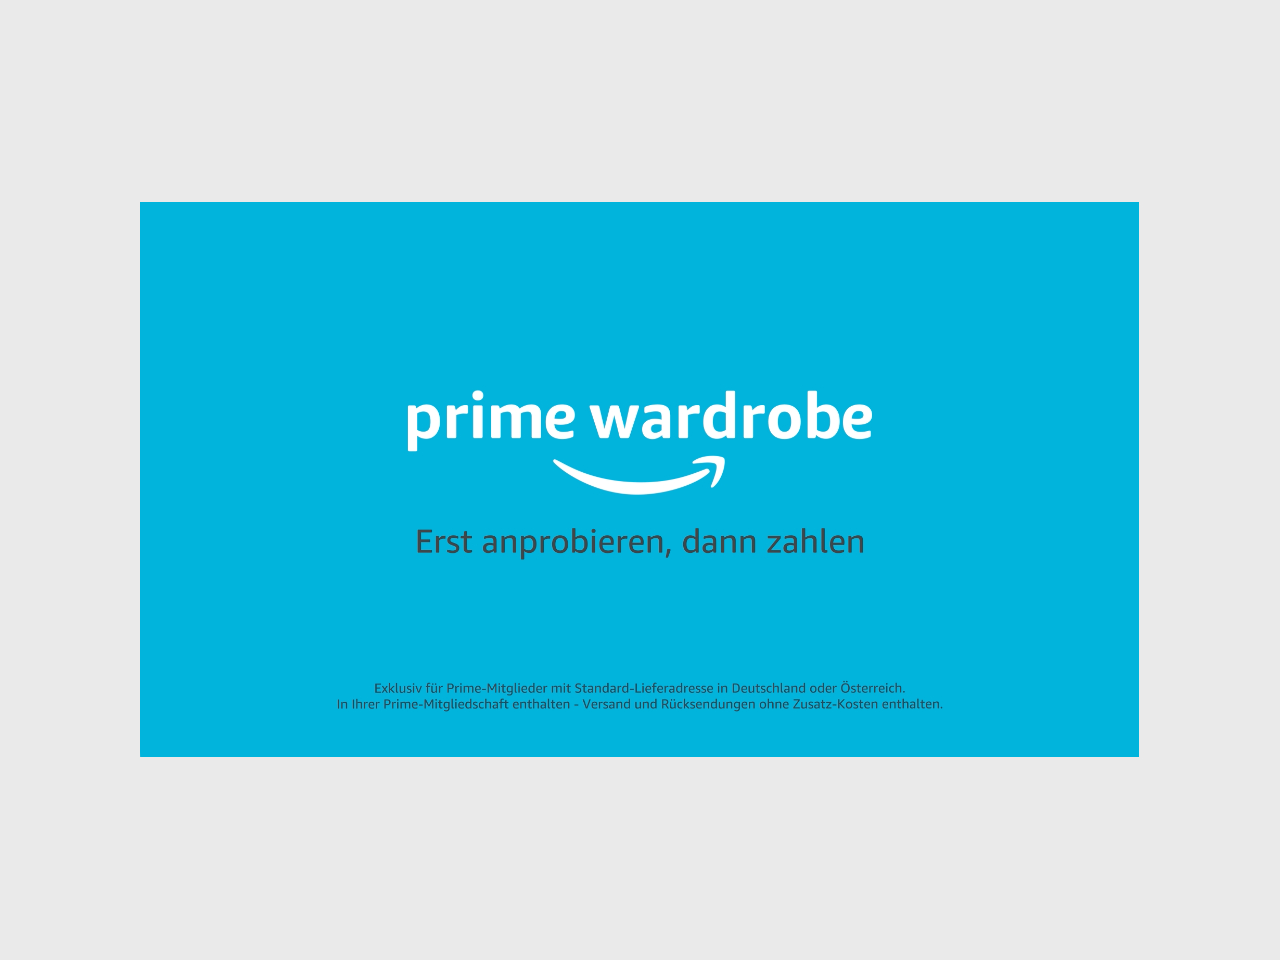 Wie funktioniert Amazon Prime Wardrobe?